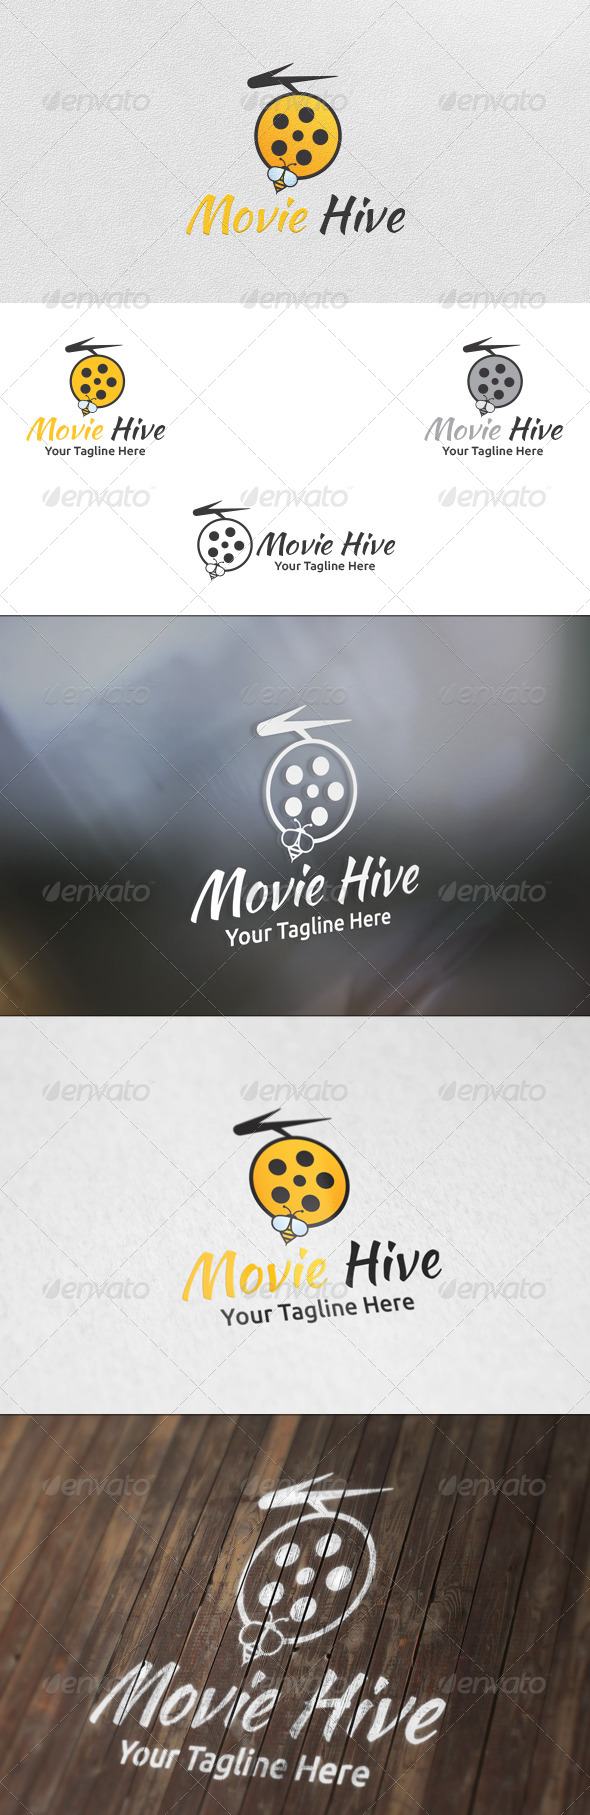 Movie Hive - Logo Template - Nature Logo Templates